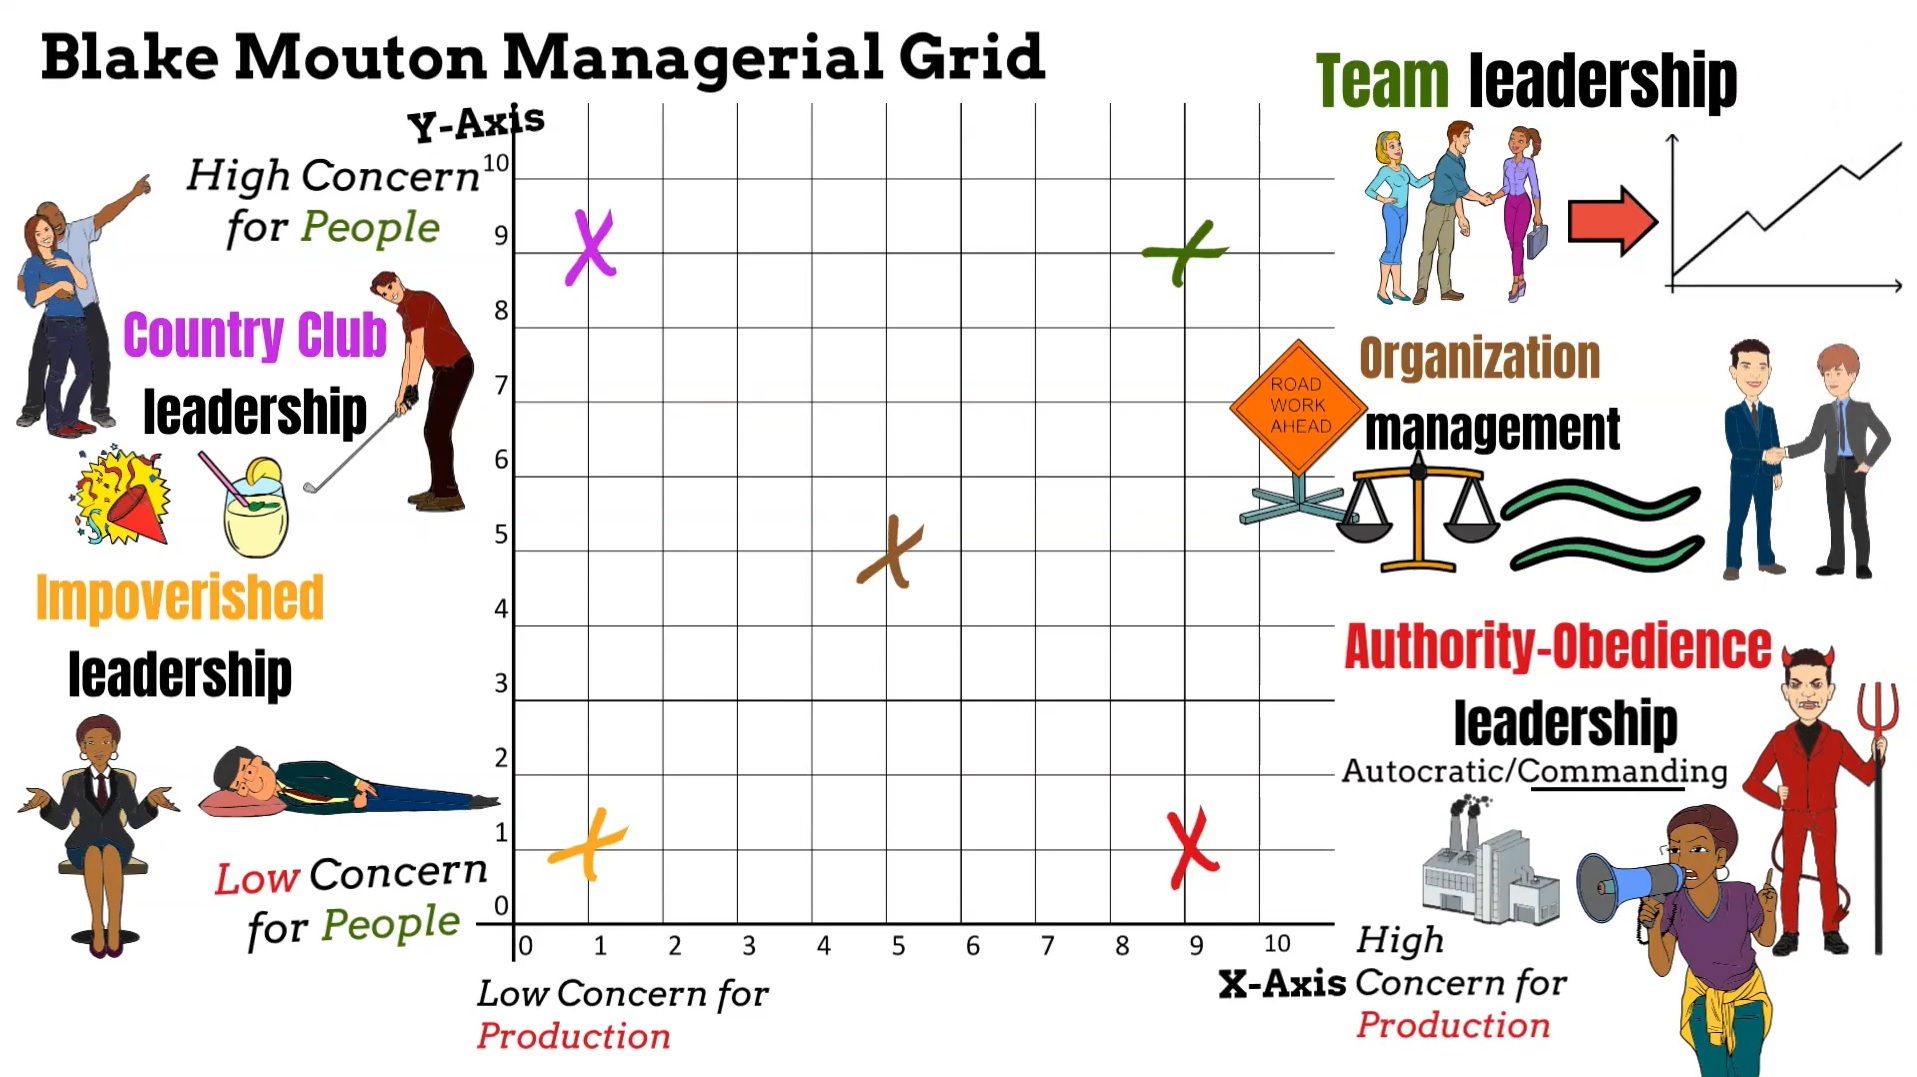 Blake and Mouton's Managerial Grid